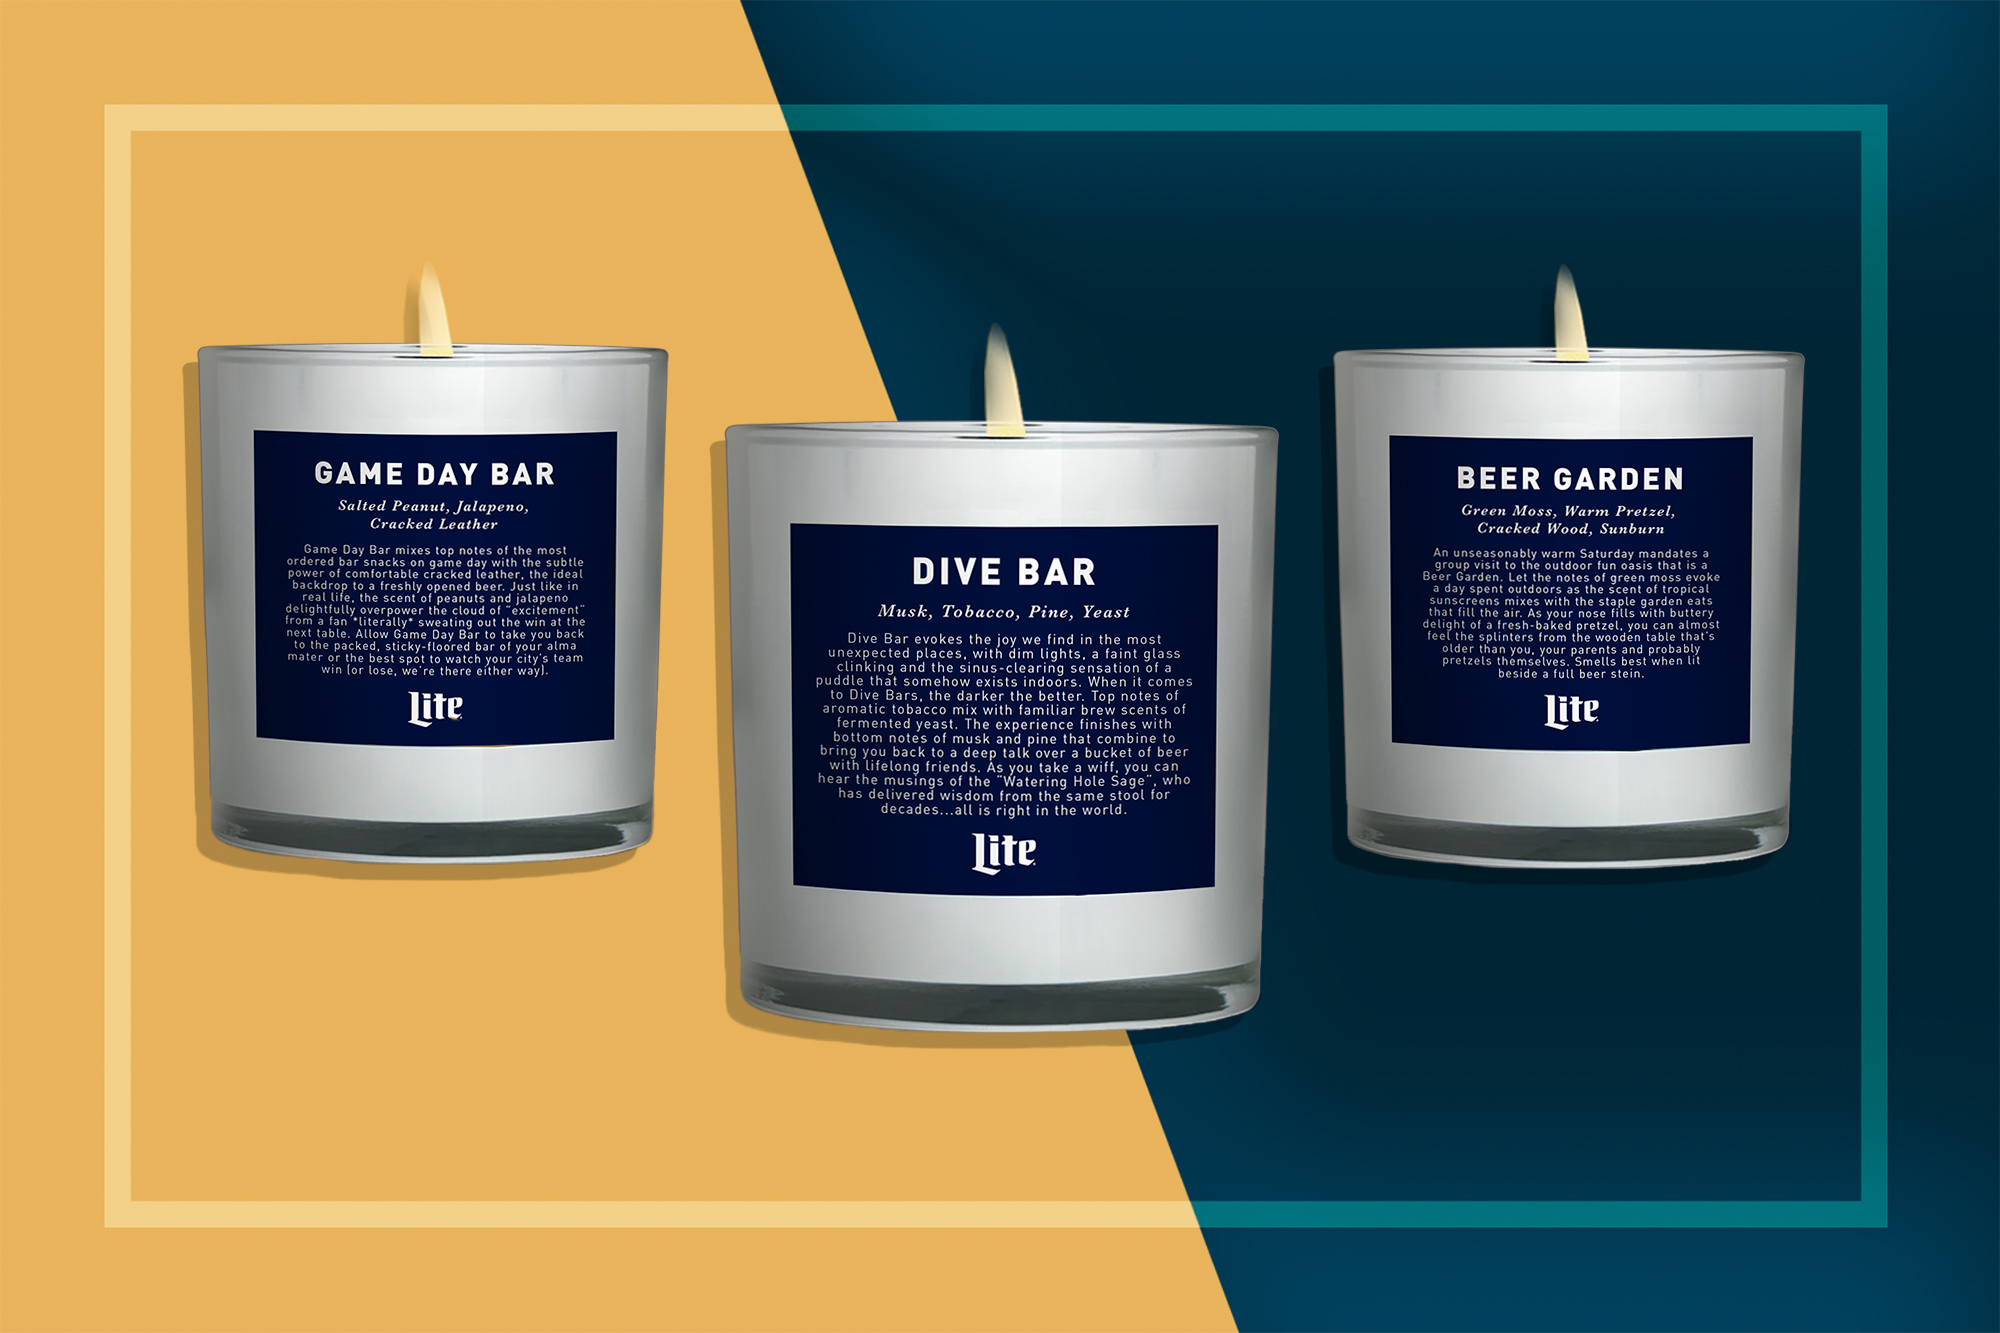 Miller Lite Made a Scented Candle That Smells Like a Dive Bar | Food & Wine